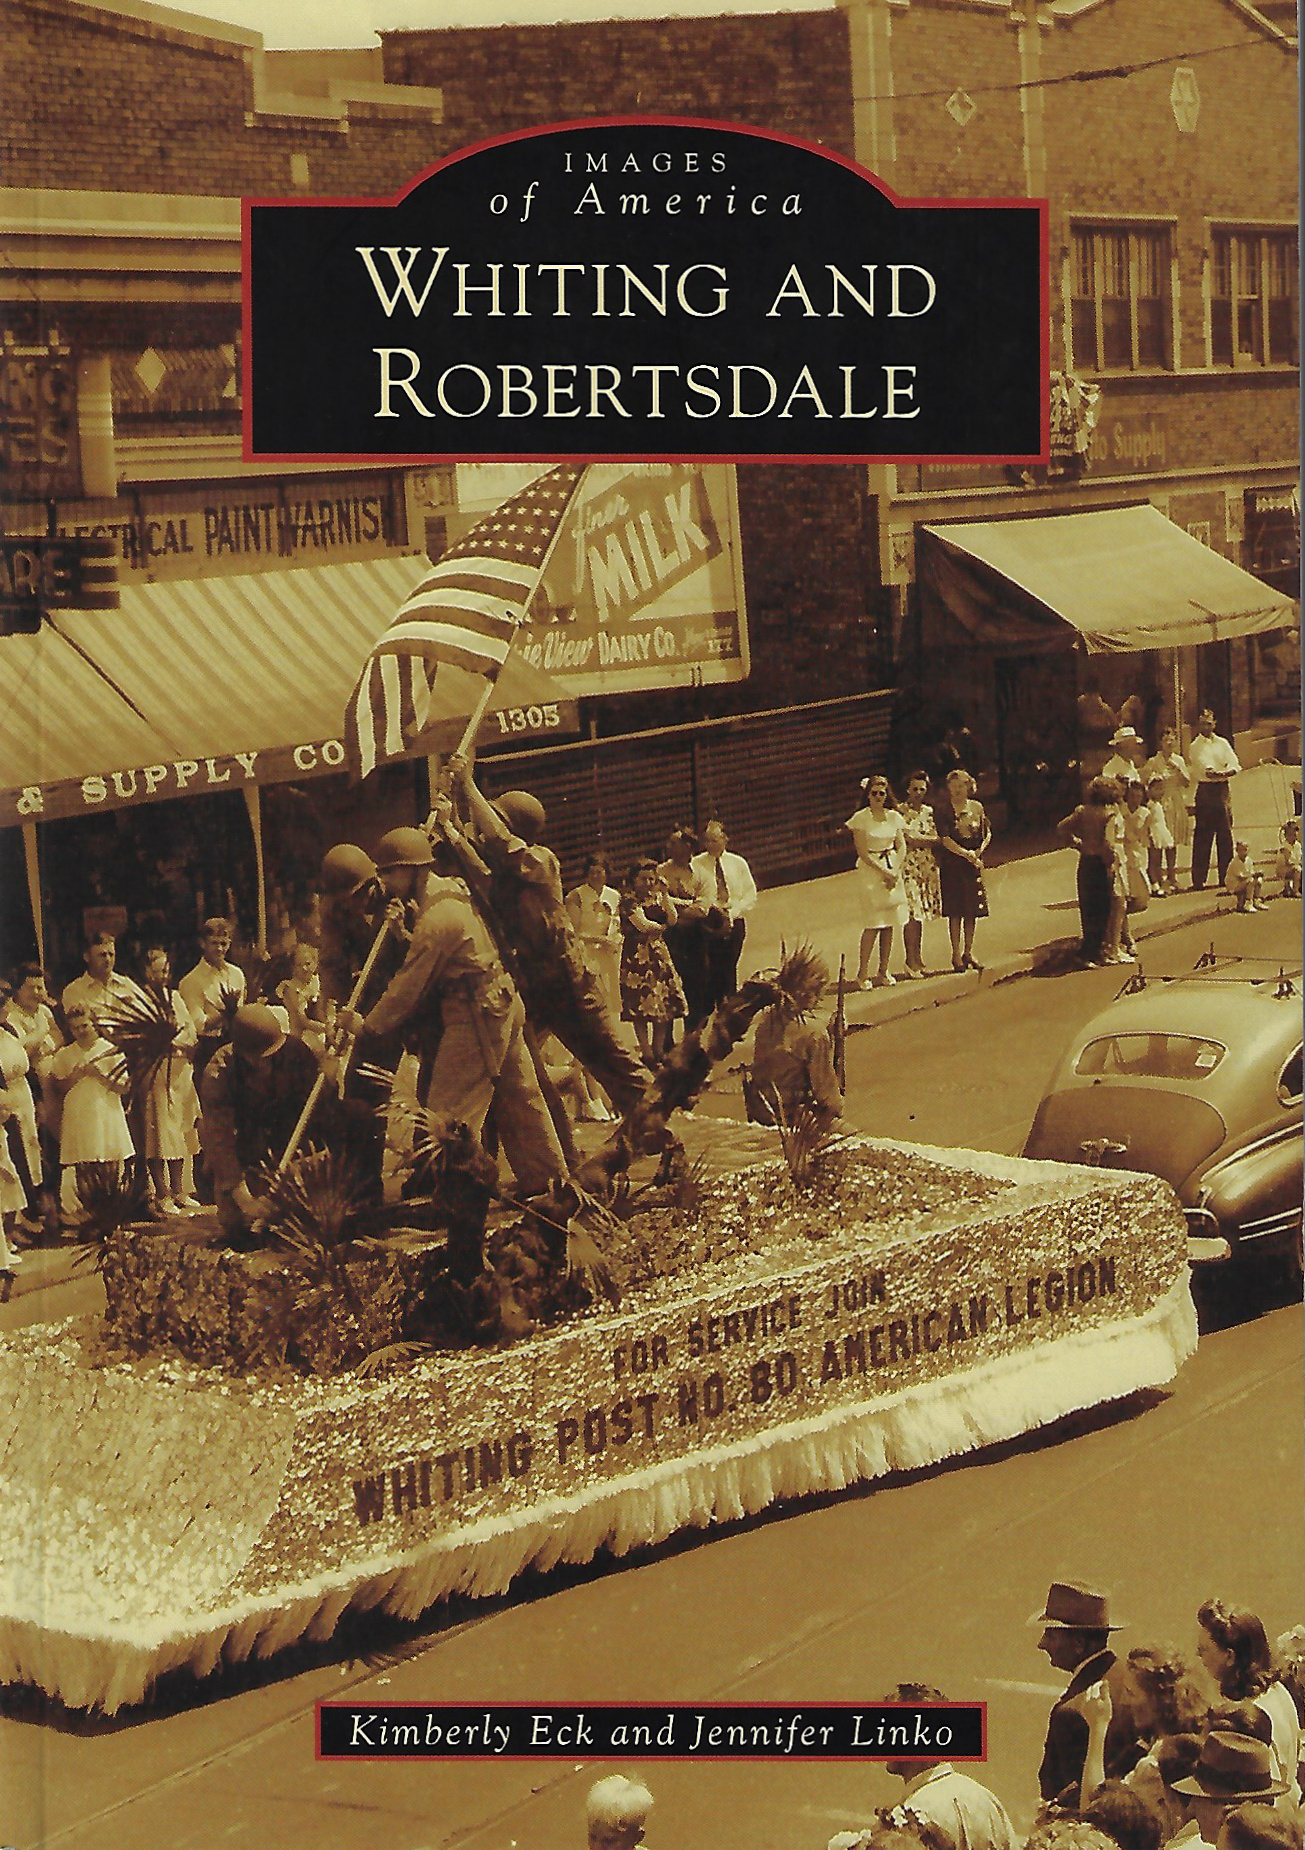 Whiting and Robertsdale by Kimberly Eck & Jennifer Linko, 2013